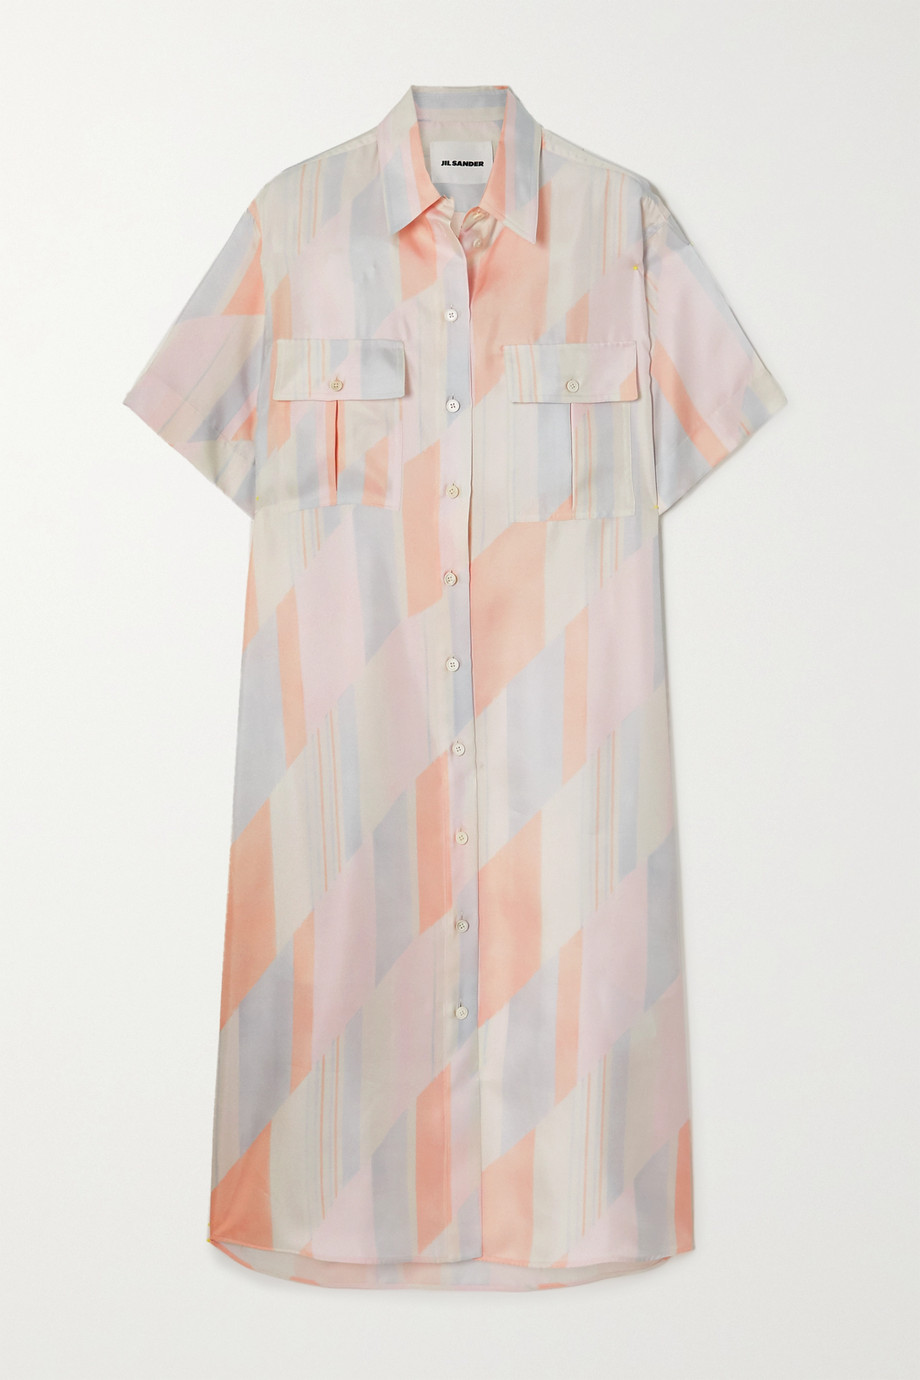 질 샌더 Jil Sander Printed silk-twill shirt dress,Ivory